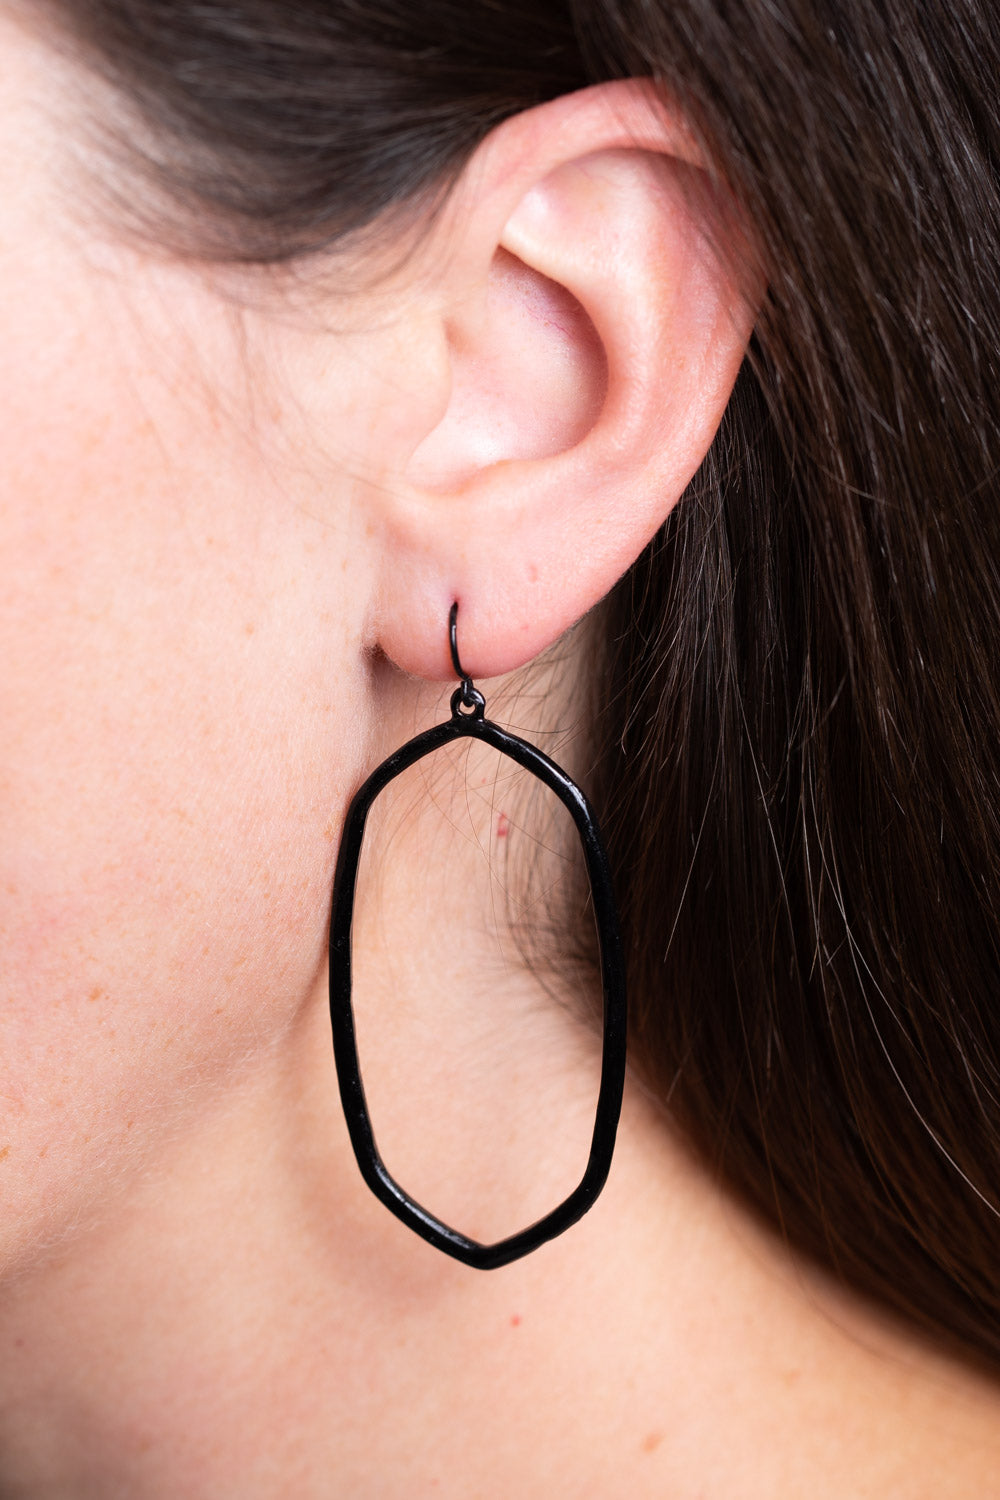 Type 4 In Focus Earrings